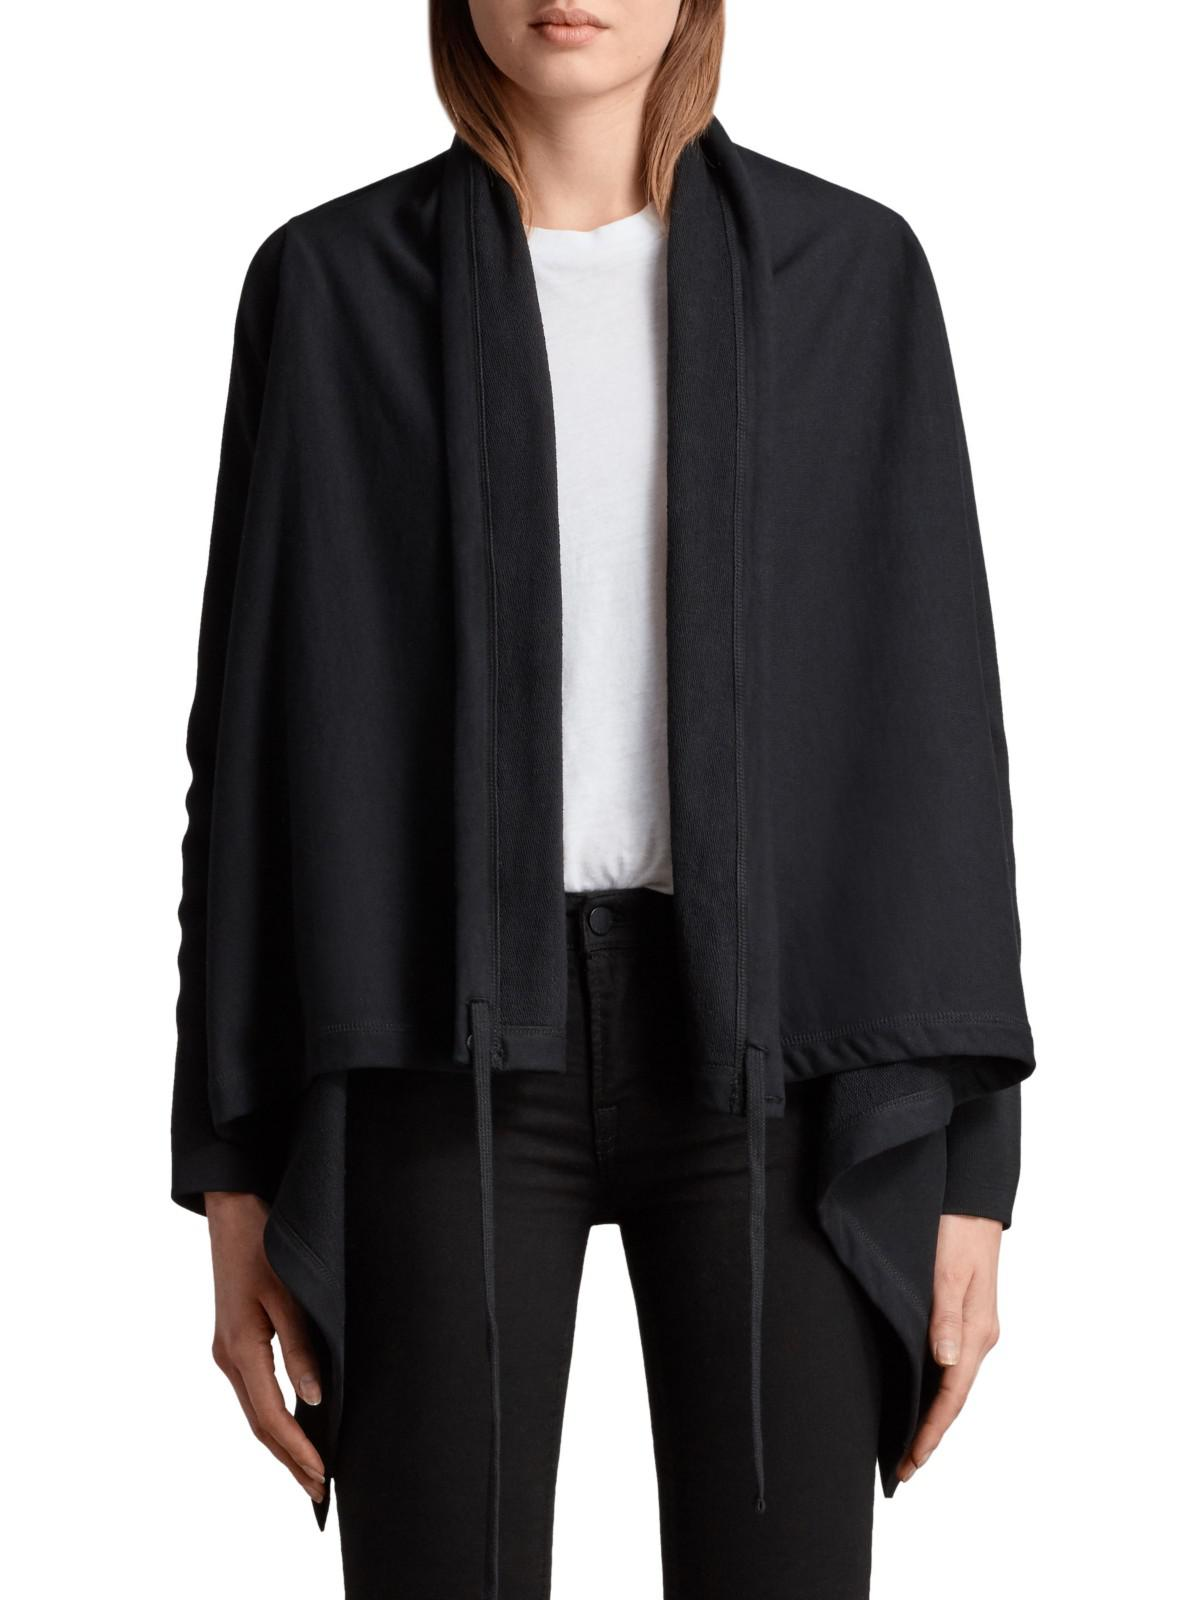 fix piece brixon review black sweet because pinson it ivy drape looked would this stitch img versitile thought feminine drapes and a pinned i cardigan be